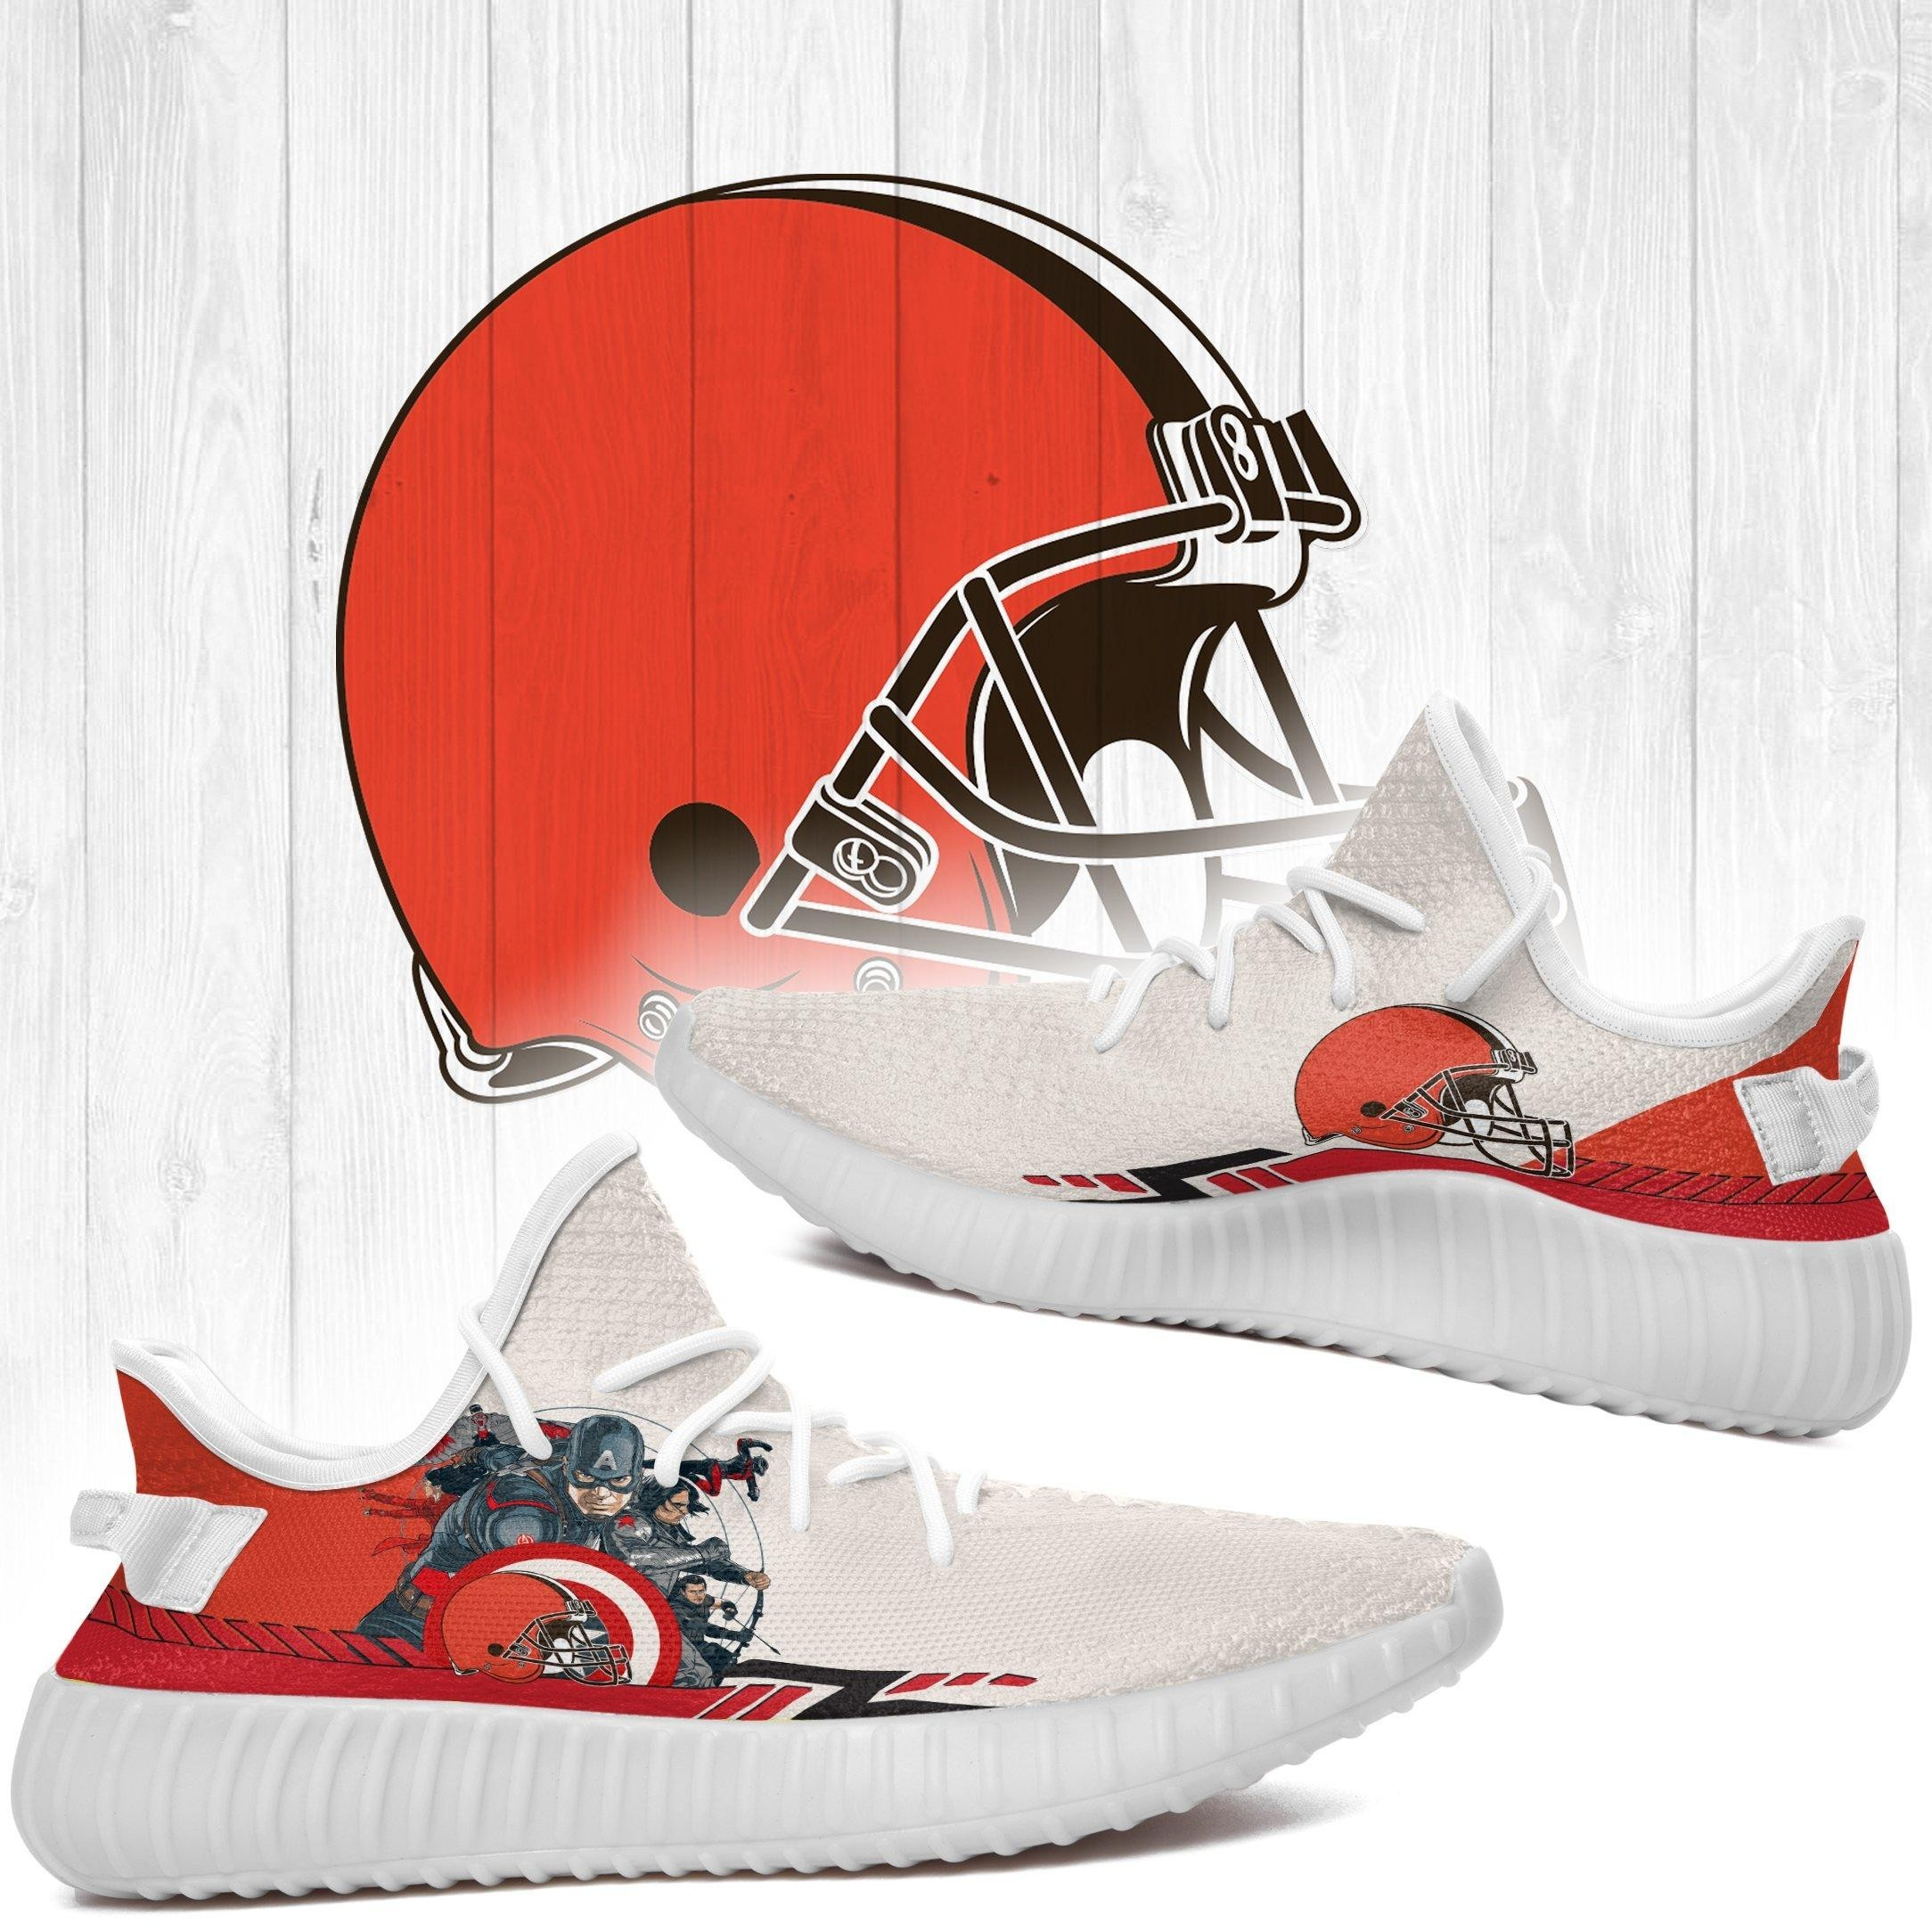 Superheroes-Cleveland Browns NFL Yeezy Boost 350 v2 Shoes Custom Yeezys Trends 2020